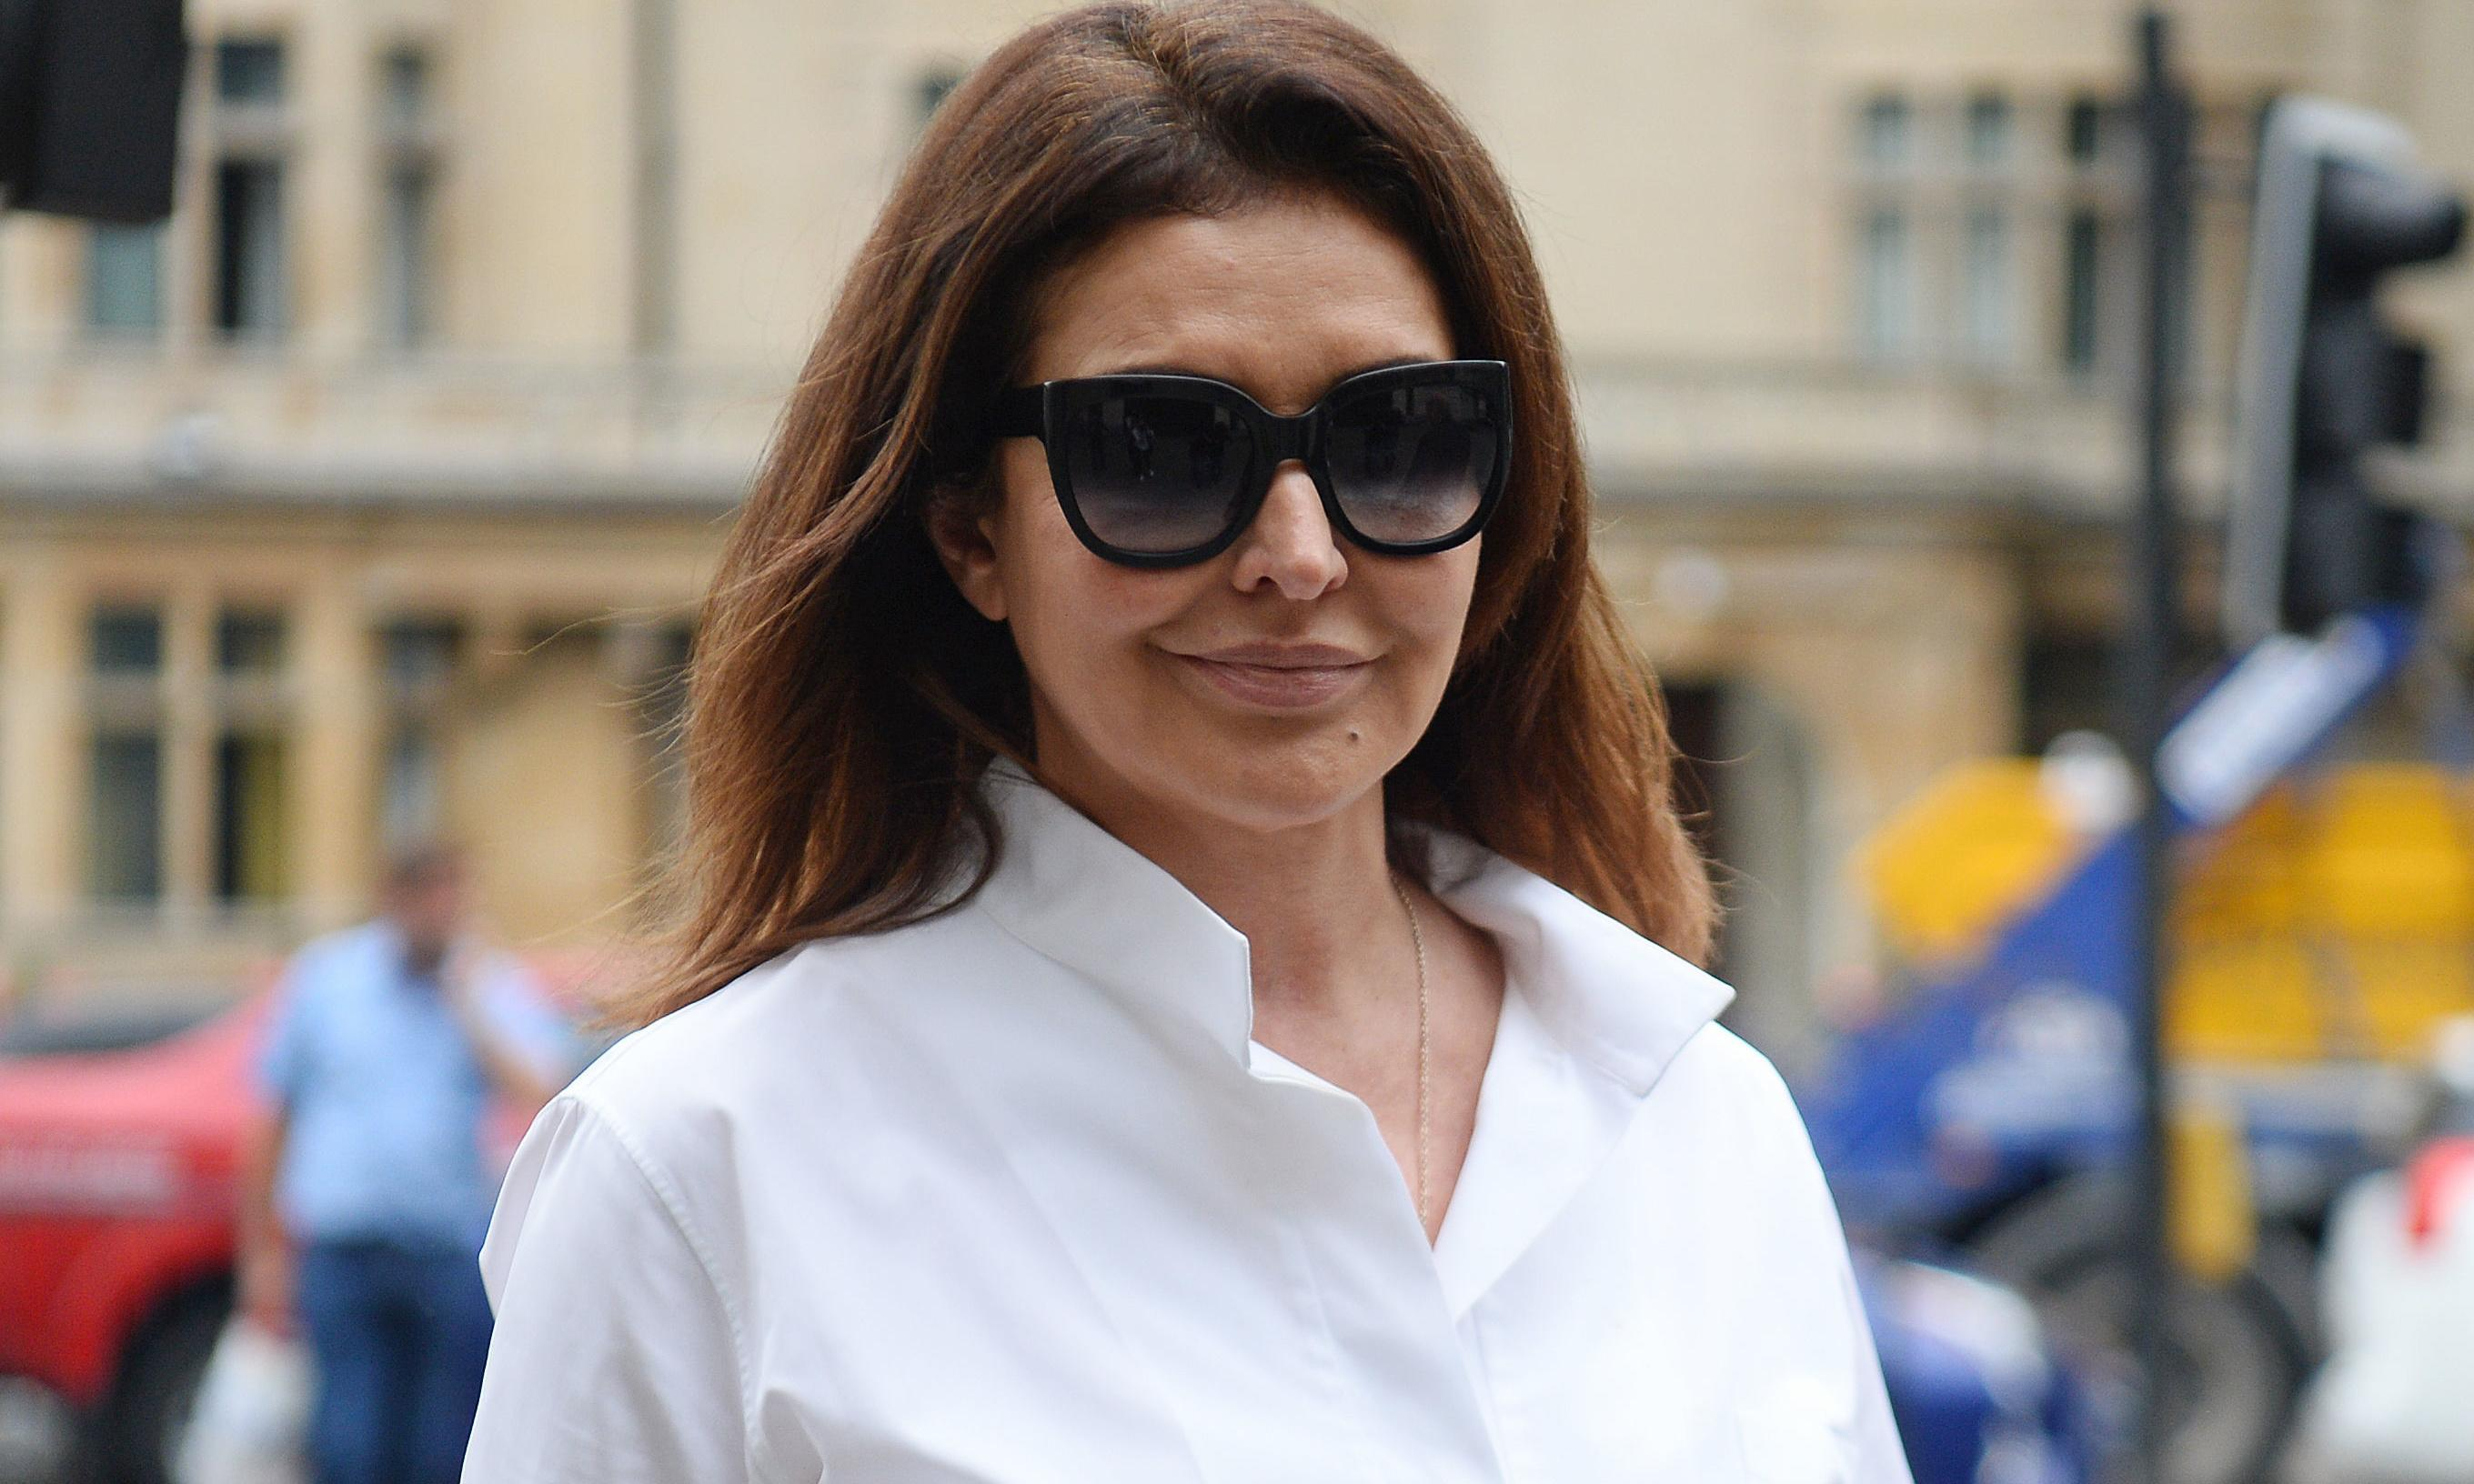 Woman who spent £16m in Harrods says court order is 'intrusive'